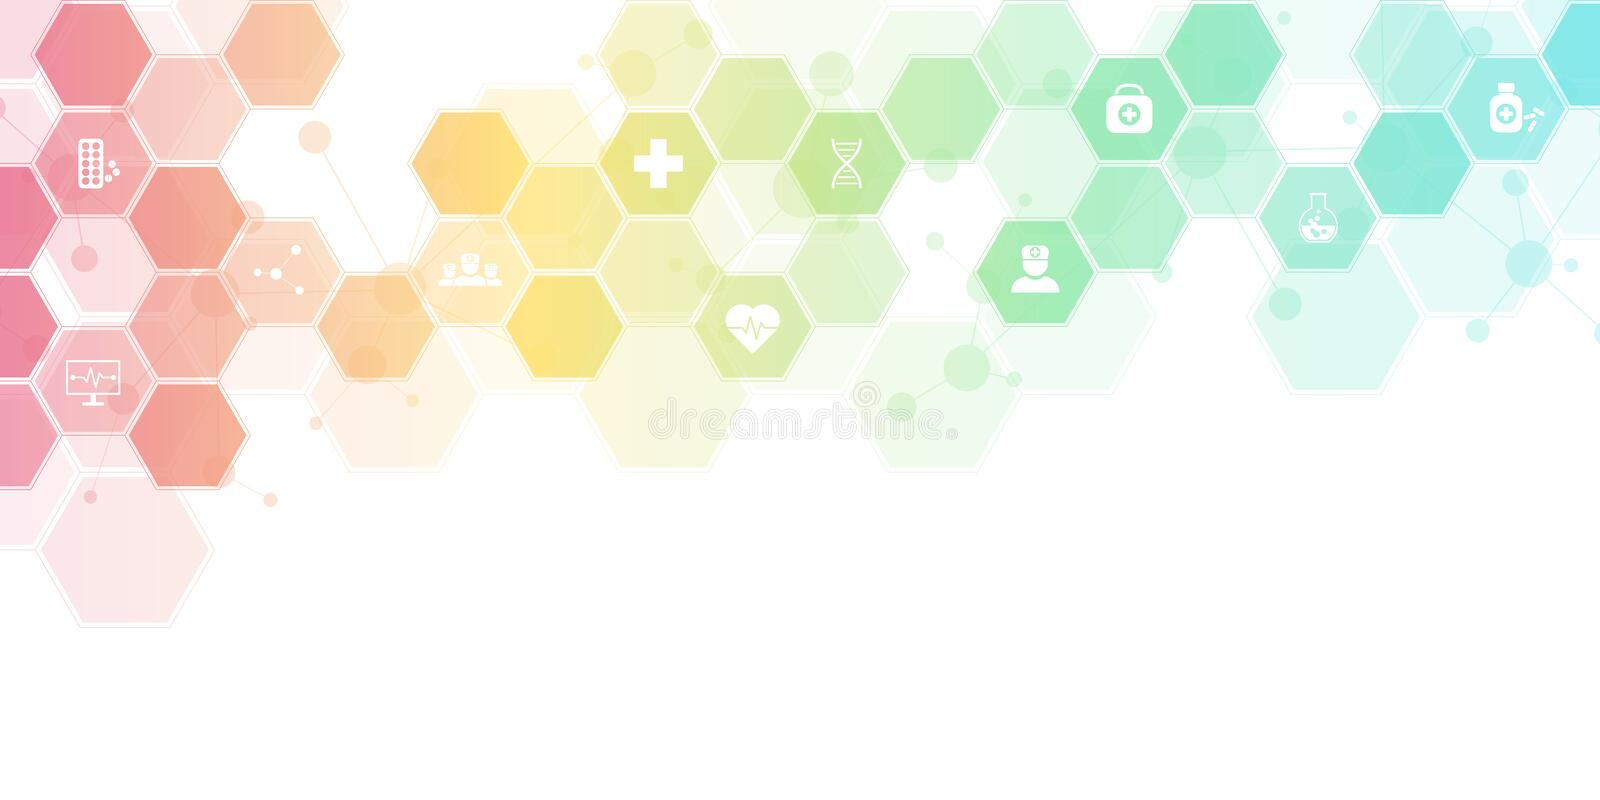 Abstract medical background with flat icons and symbols. Concepts and ideas for healthcare technology, innovation. Medicine, health, science and research stock illustration